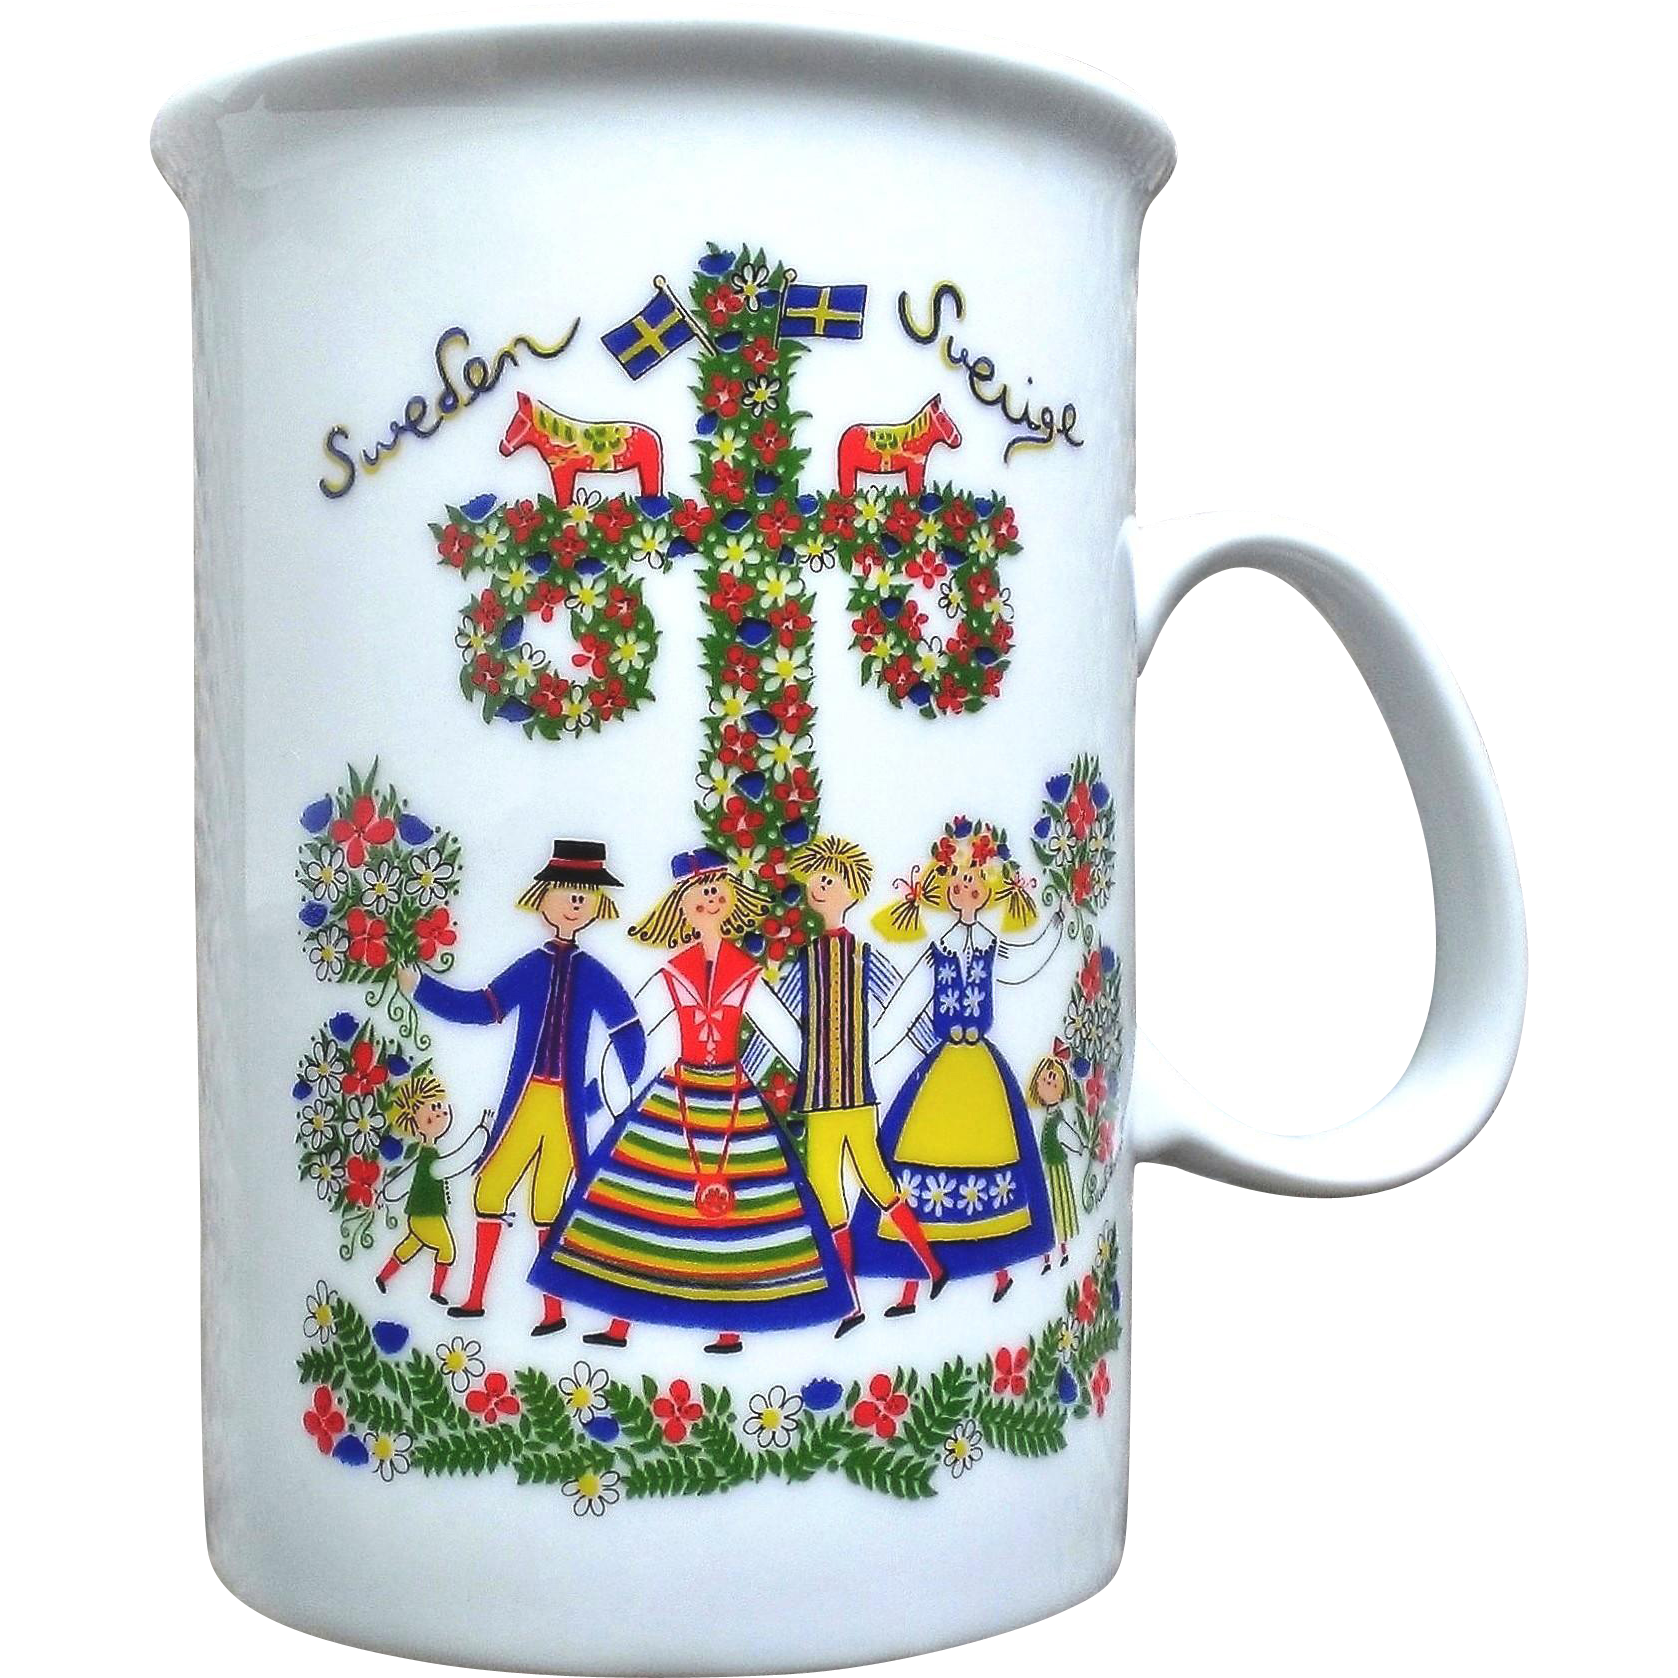 Allan Flink Souvenir of Sweden Mug